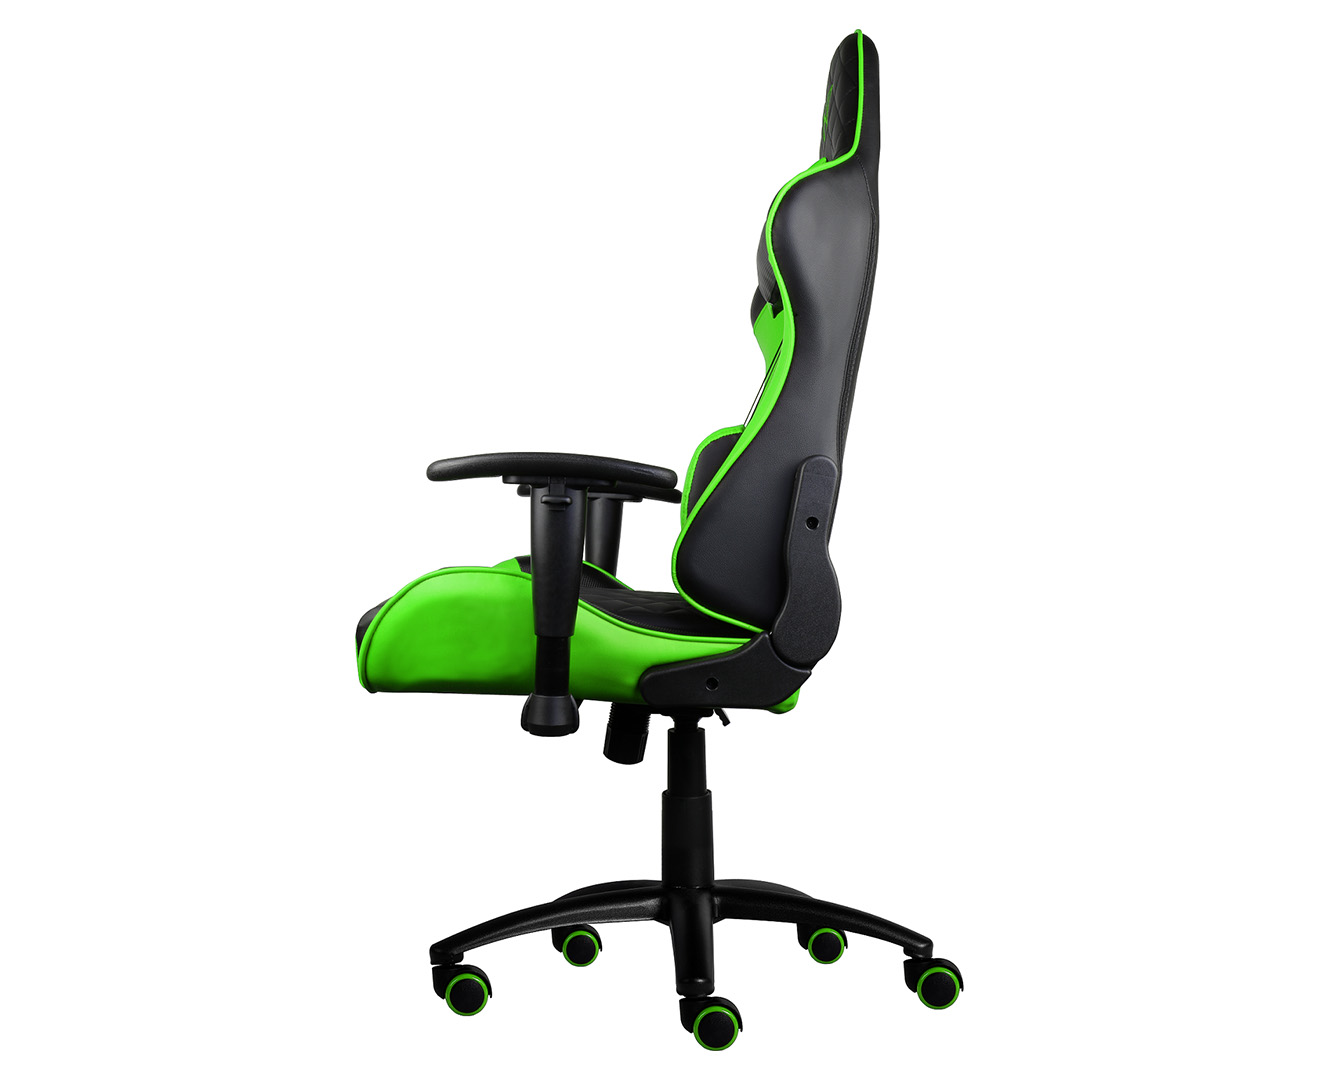 Remarkable Thunderx3 Tgc12 Gaming Chair Black Green Pdpeps Interior Chair Design Pdpepsorg